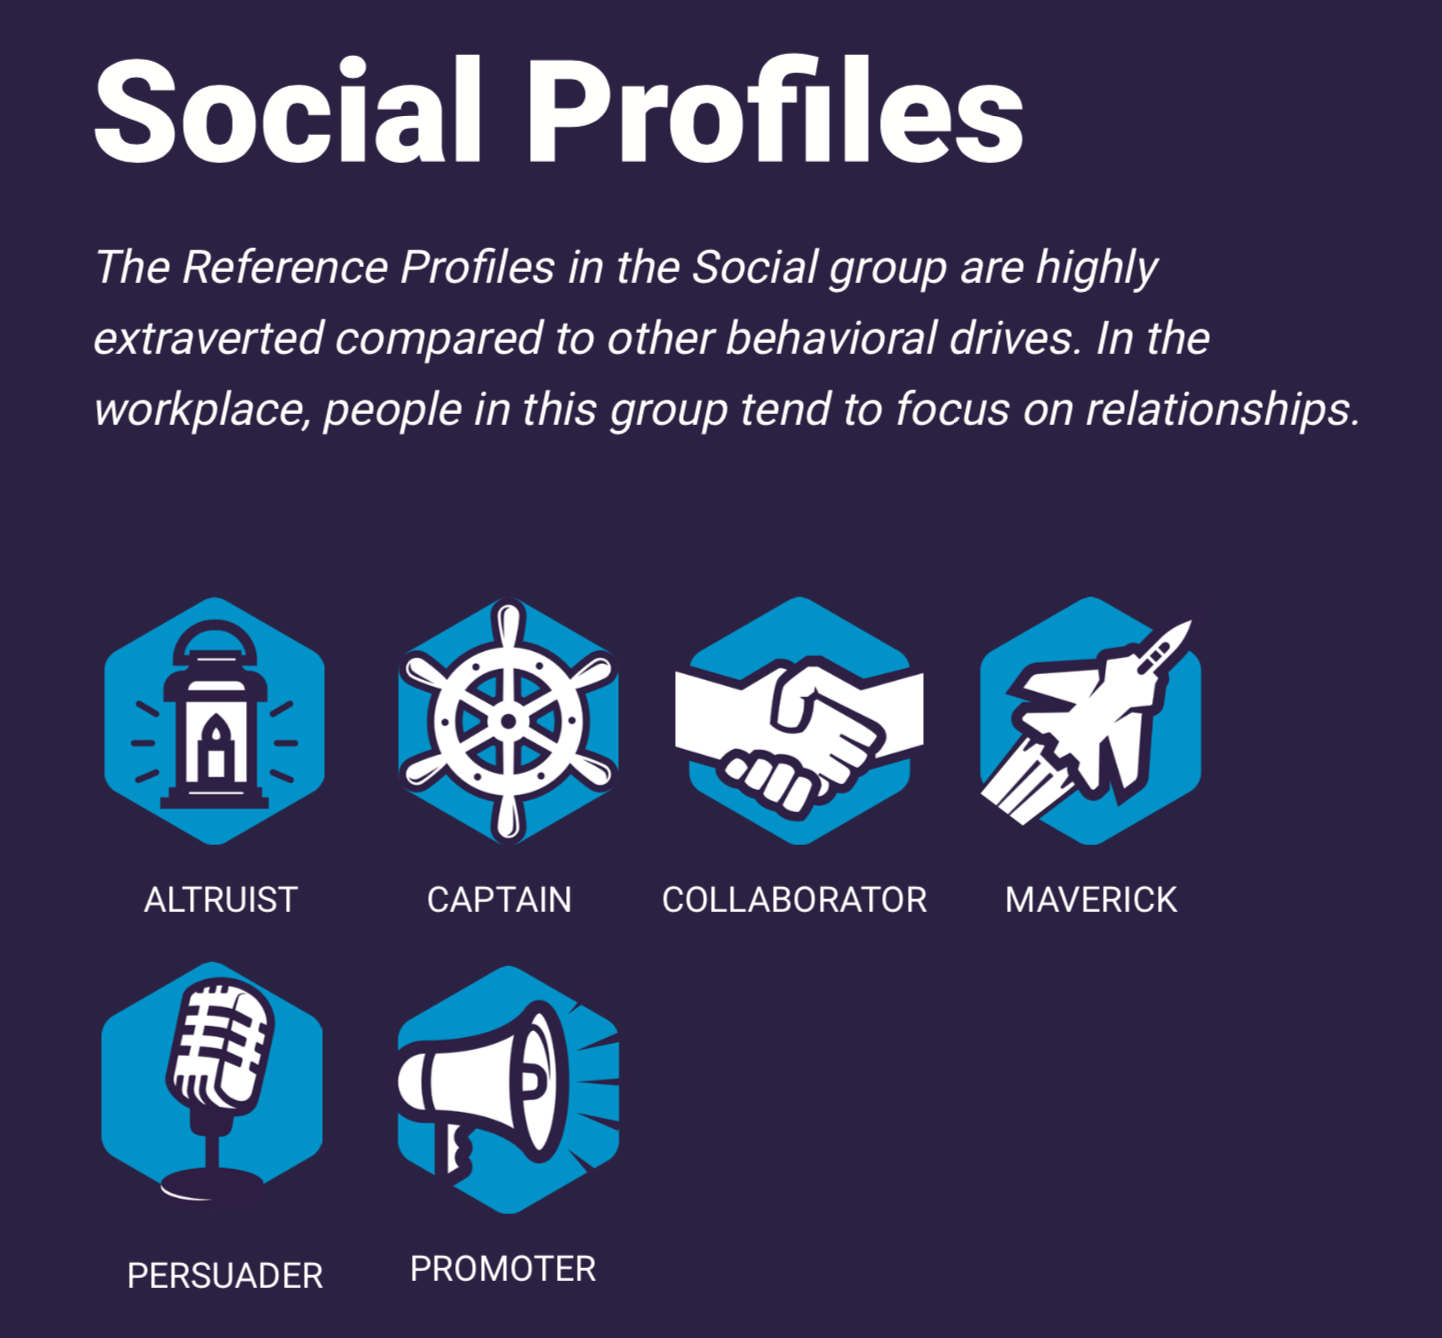 When hiring a sales BDR, look for someone with a social profile.